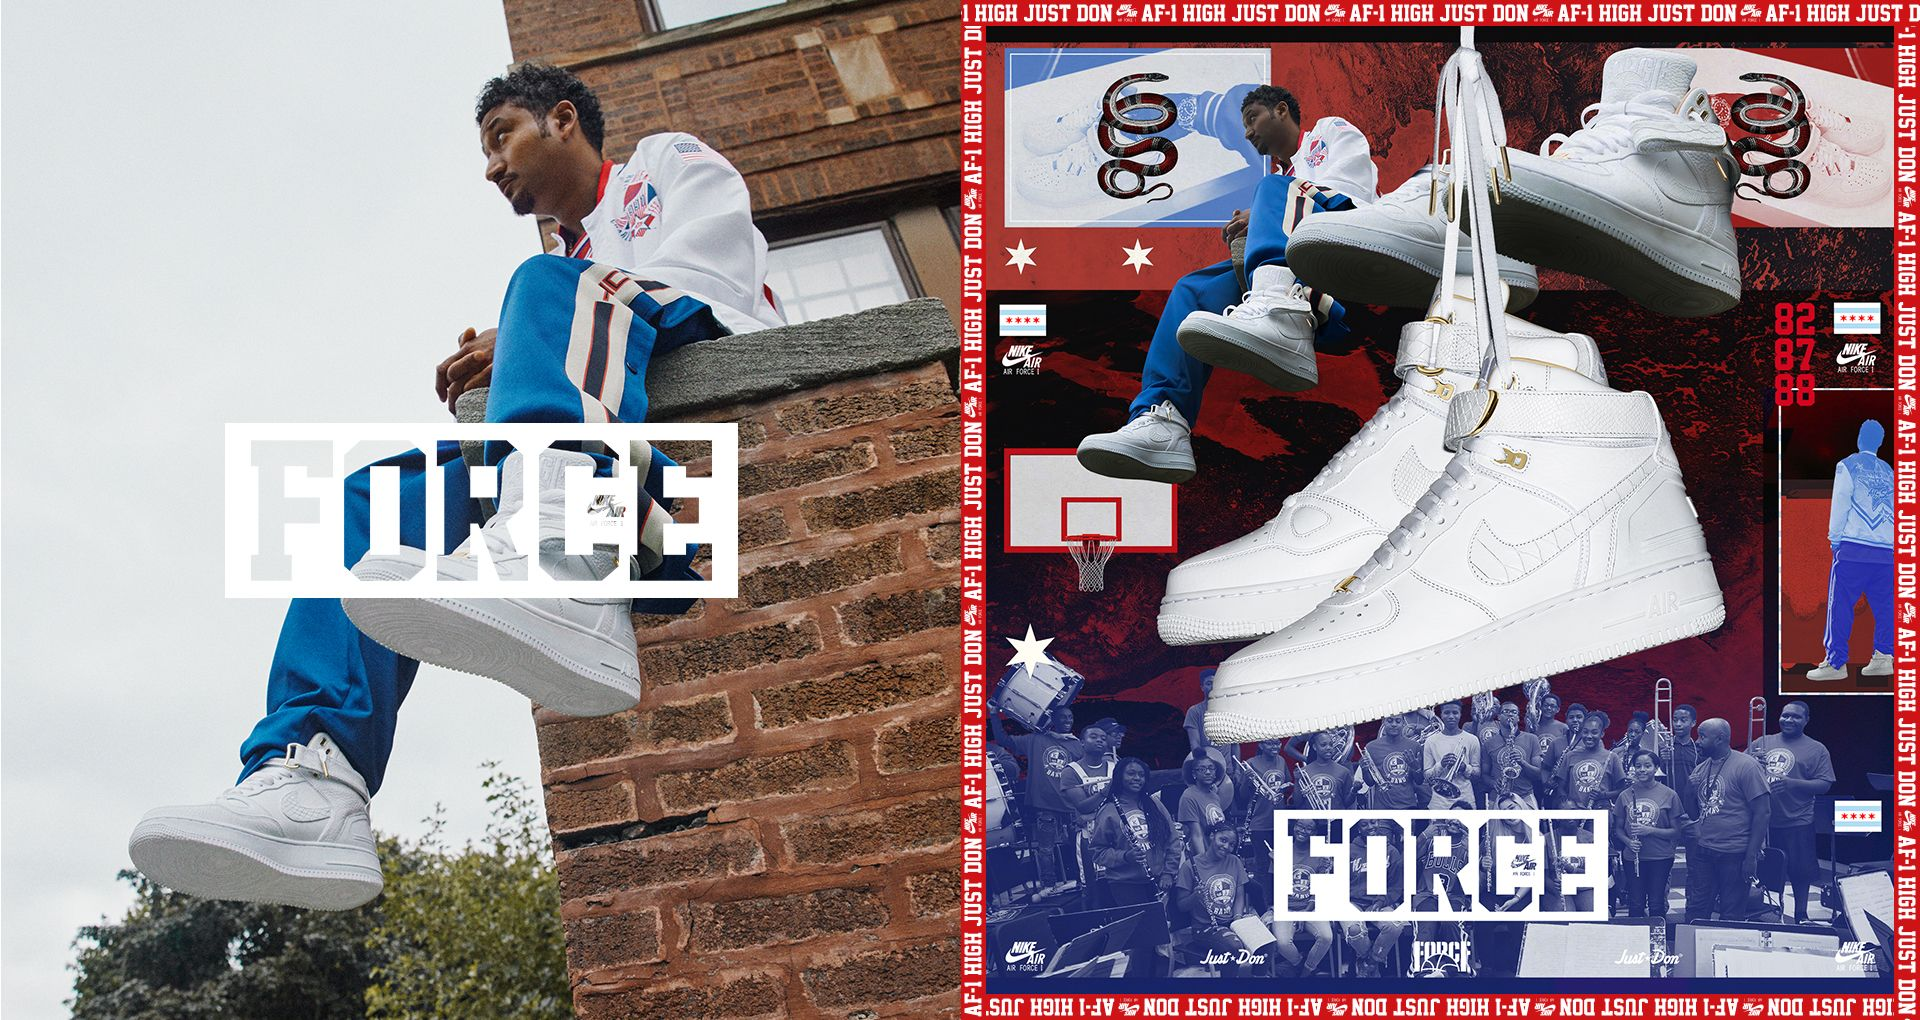 abb9e62d0ae624 Nike Air Force 1  Just Don  Release Date. Nike+ SNKRS